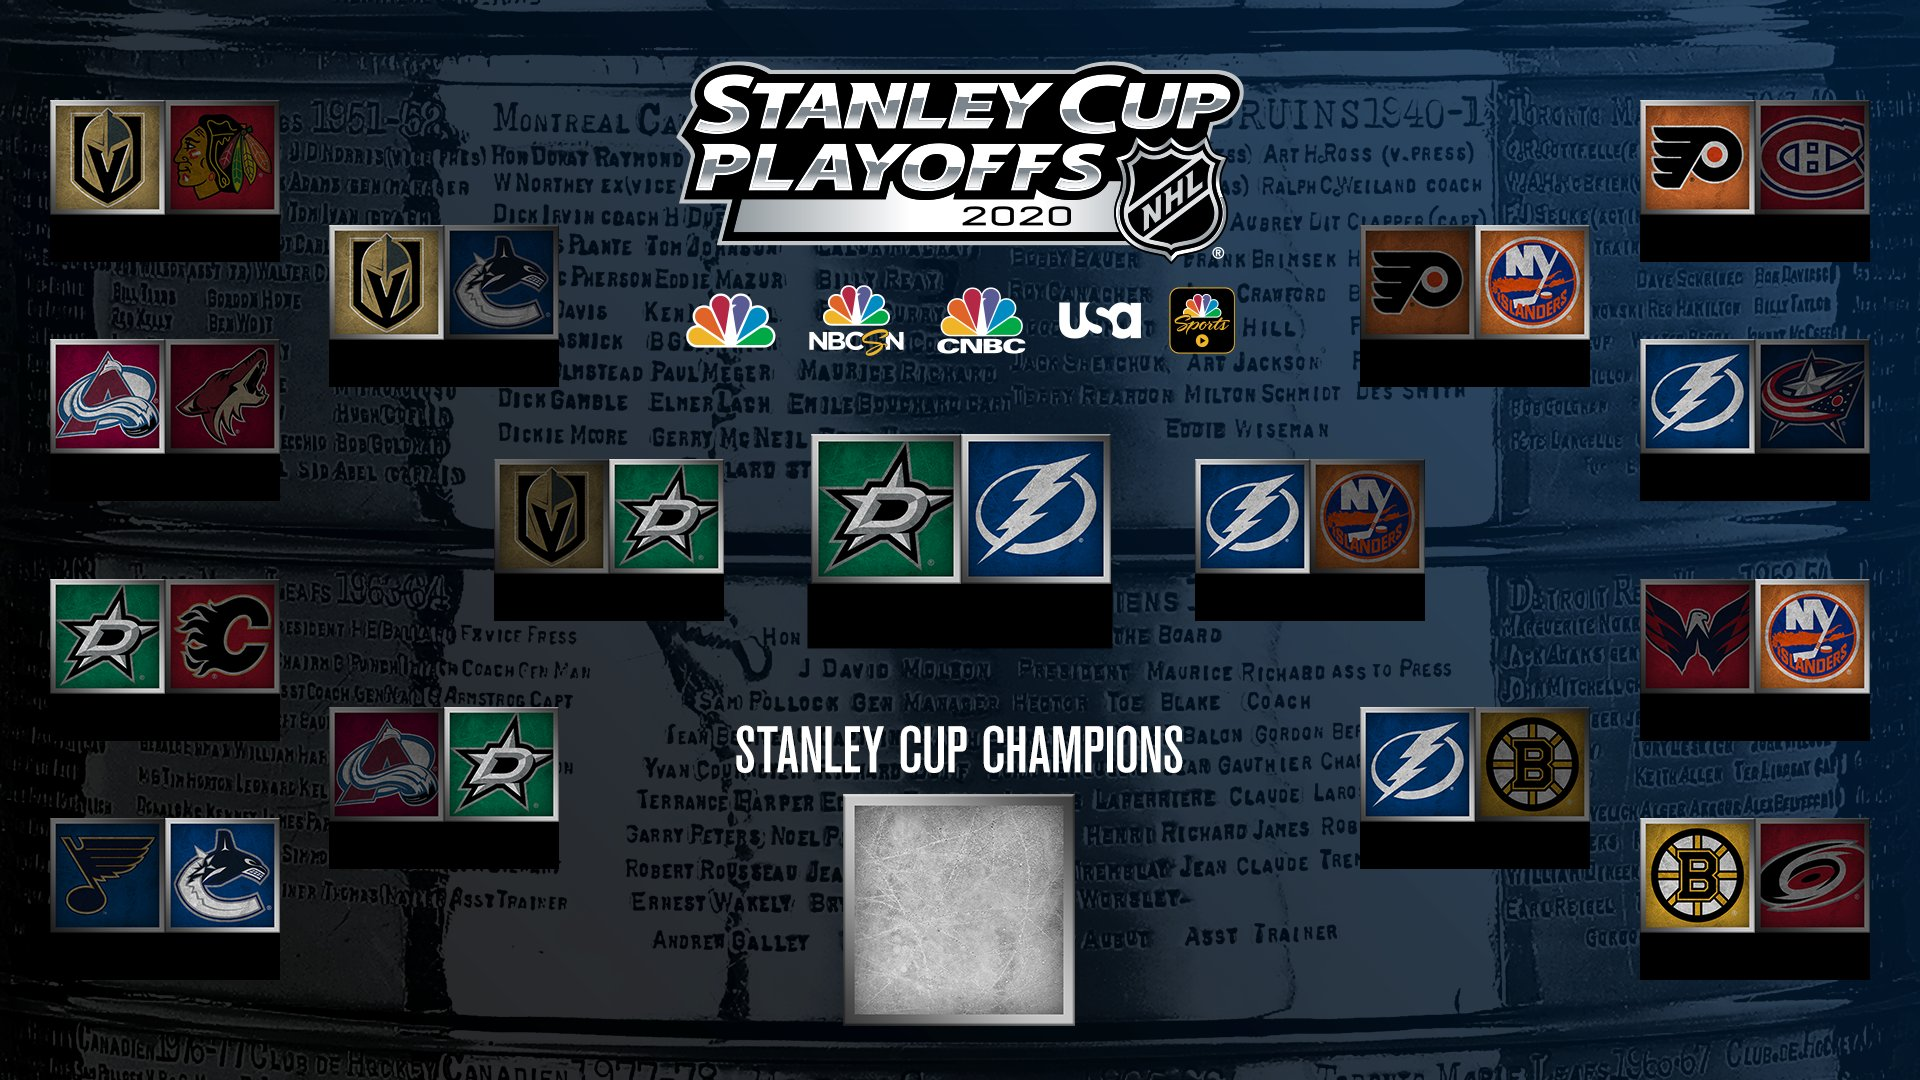 Monday's NHL playoff game